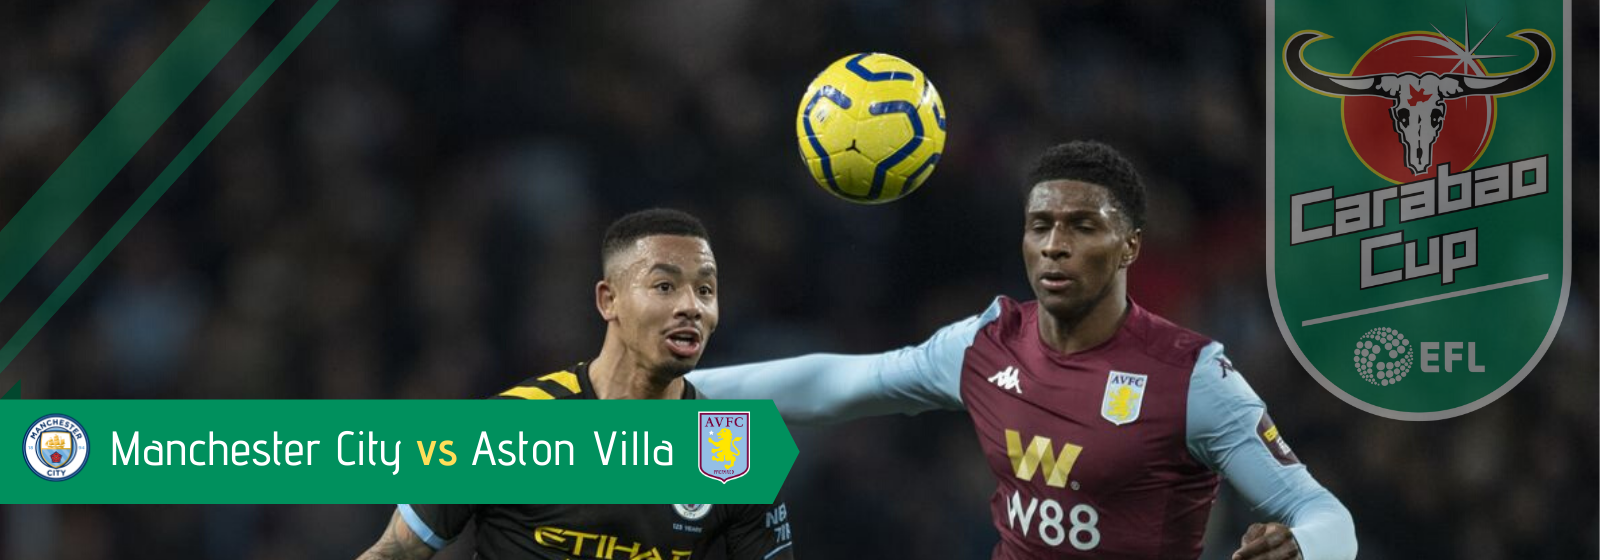 Asianconnect: Manchester City vs Aston Villa Odds for March 01, 2020